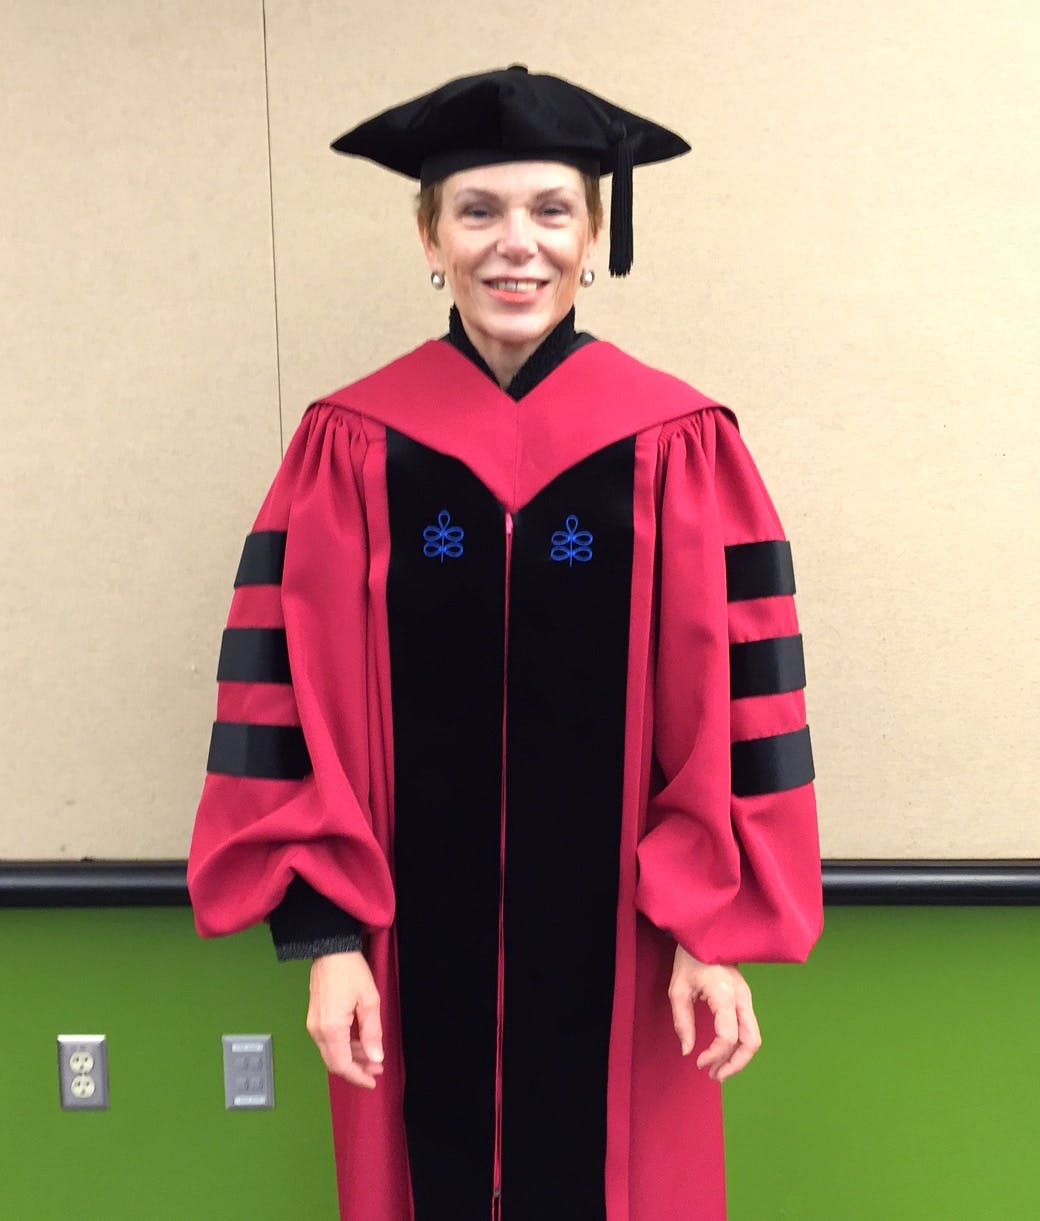 Harvard PhD Regalia – PhinisheD Gown